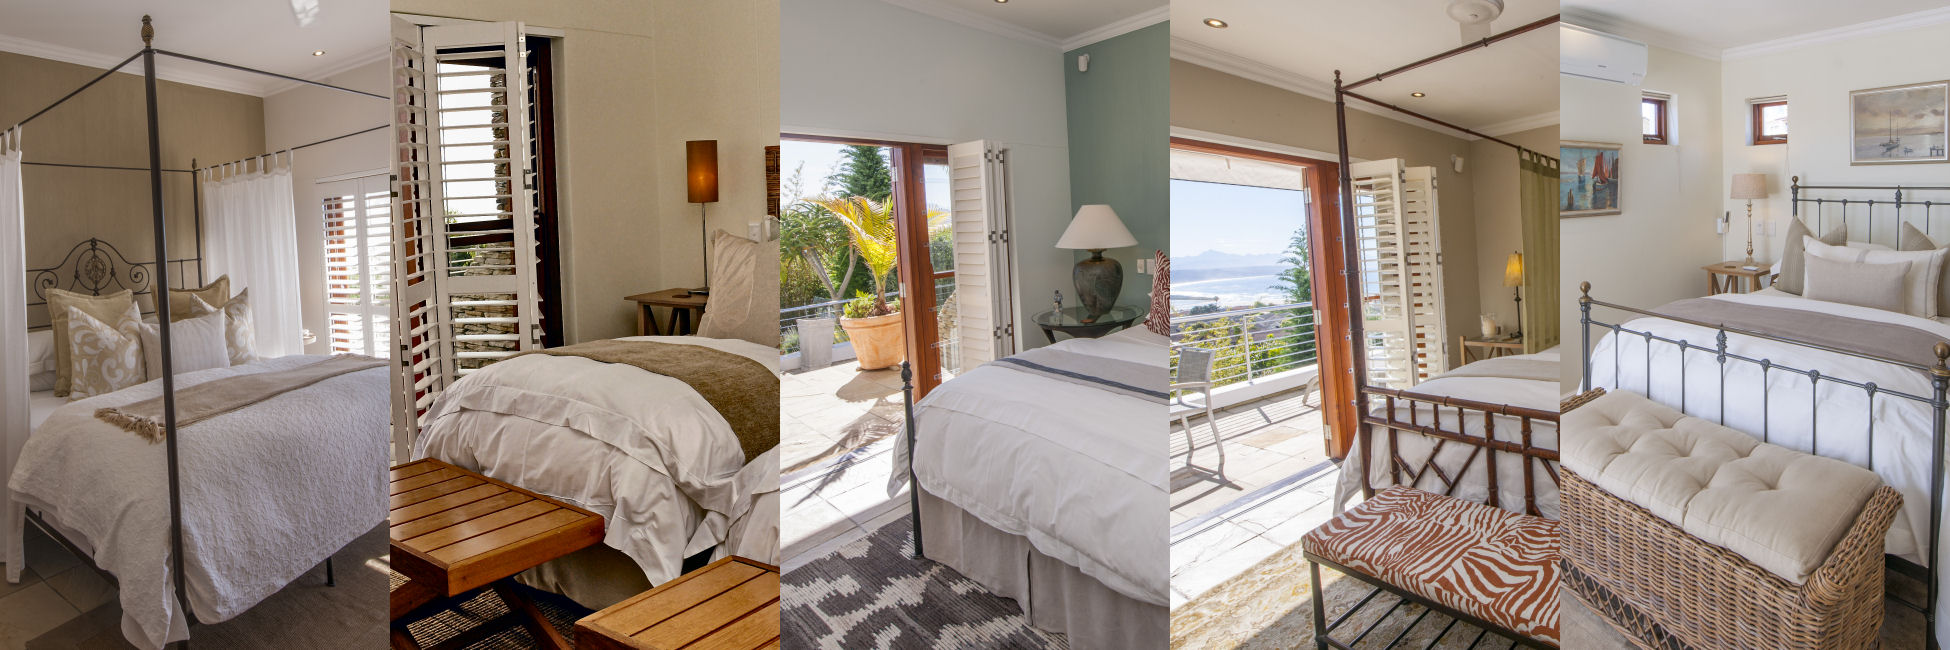 Bed & Breakfast Accommodation Plettenberg Bay